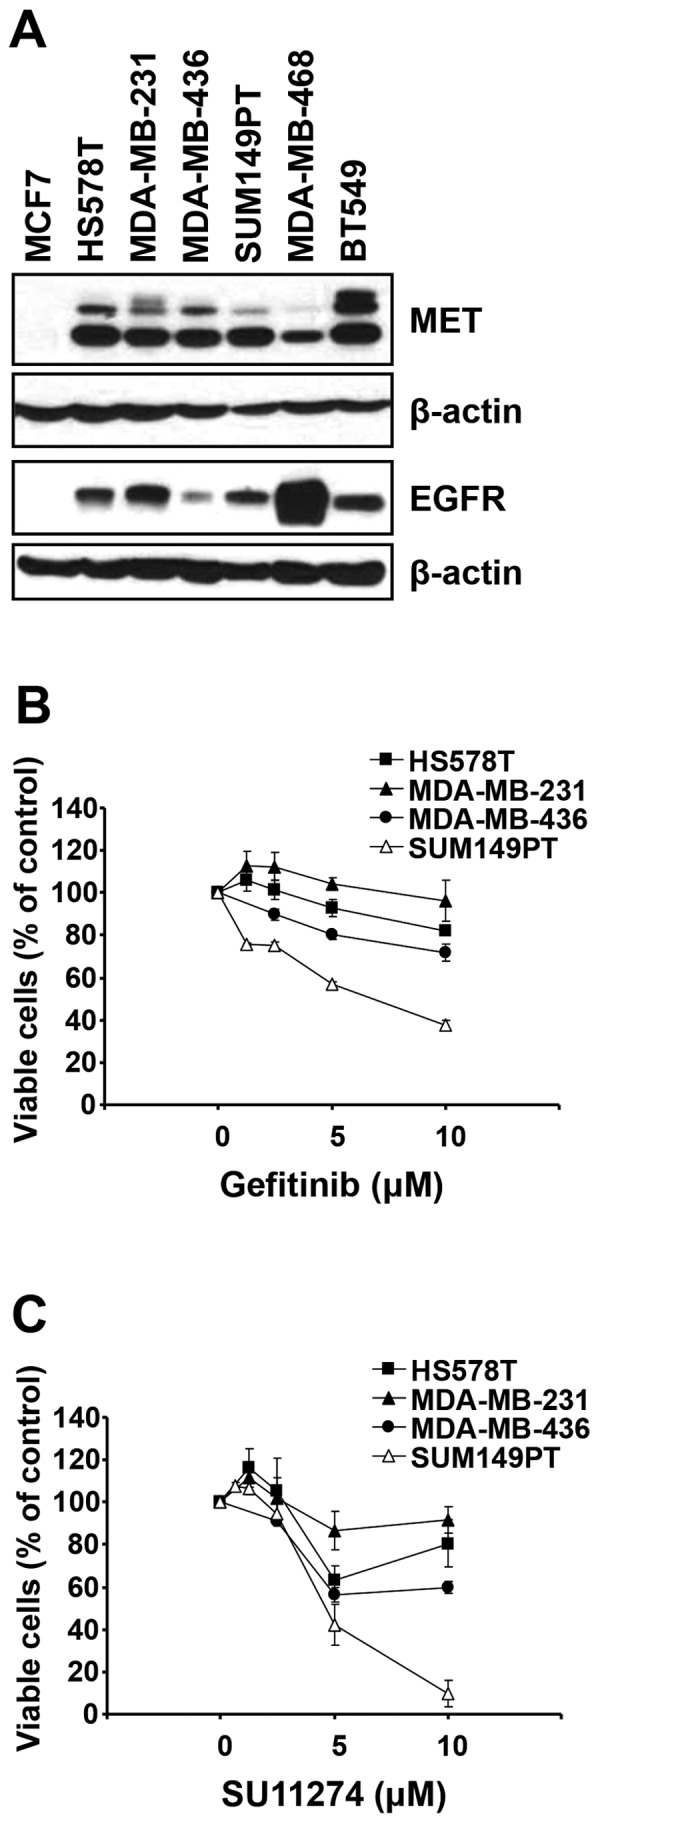 MSL subtype TNBC cells are resistant to either gefitinib or SU11274 in spite of high expression of EGFR and MET. (A) Cell lysates from exponentially growing cells were subjected to western blot analysis with indicated antibodies. β-actin was used as a loading control. (B and C) Cells were incubated with increasing concentrations of gefitinib (B) or SU11274 (C) for ≤72 h and the viable cells were determined by MTT cell viability assay. Data are presented as mean ± SEM from three independent experiments performed in triplicate.